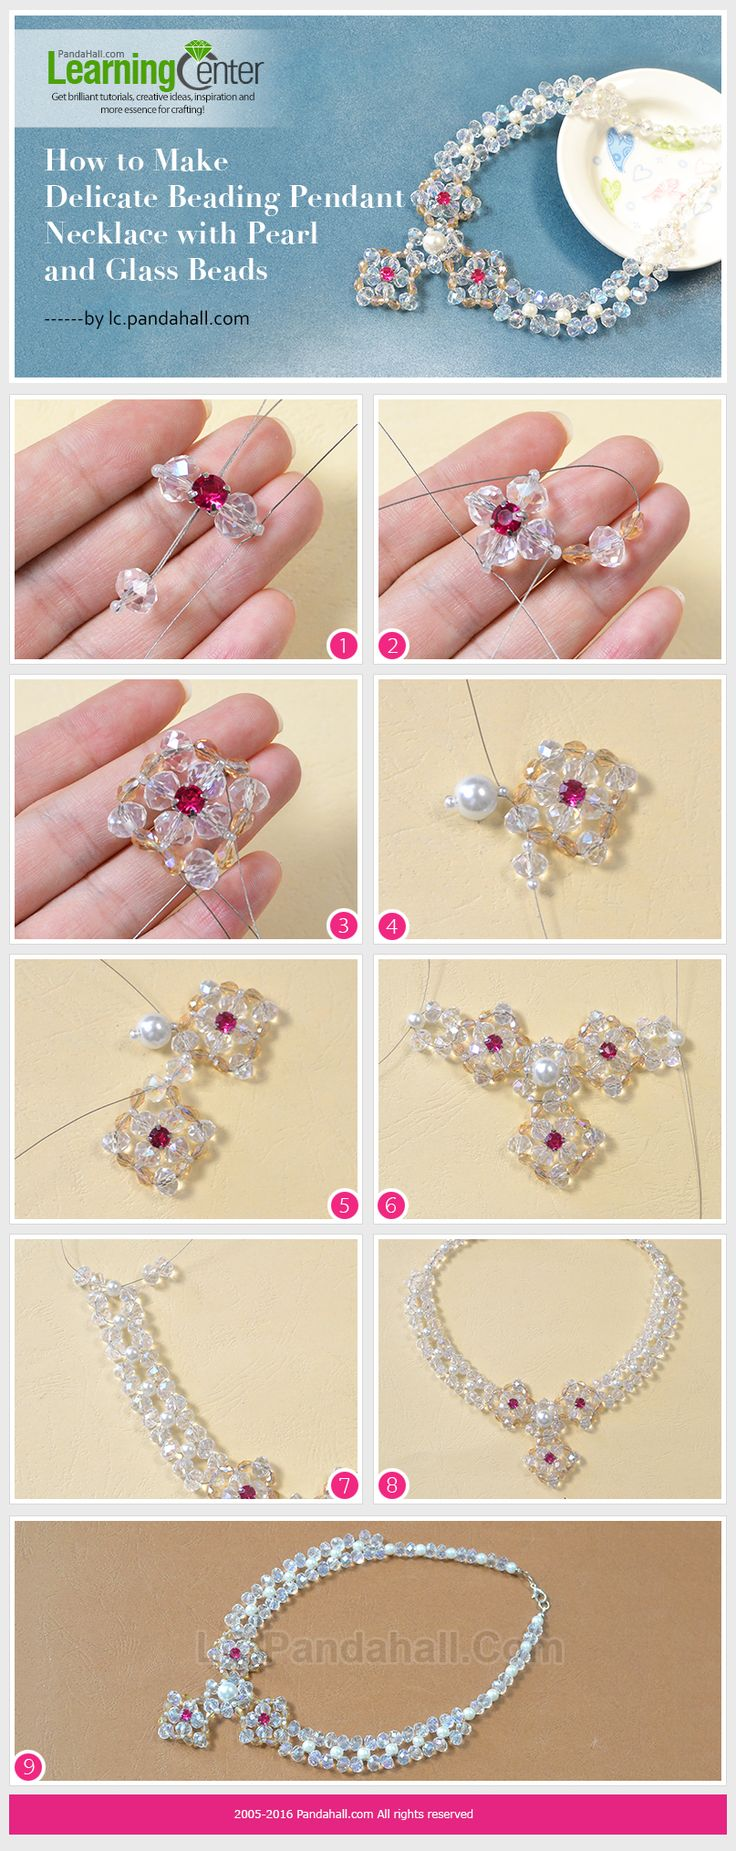 making images bracelet the diy wire jewelry pandahall will com best lc pinterest bracelets charm publish beads beading and on wrap it wrapped momsandcrafters like